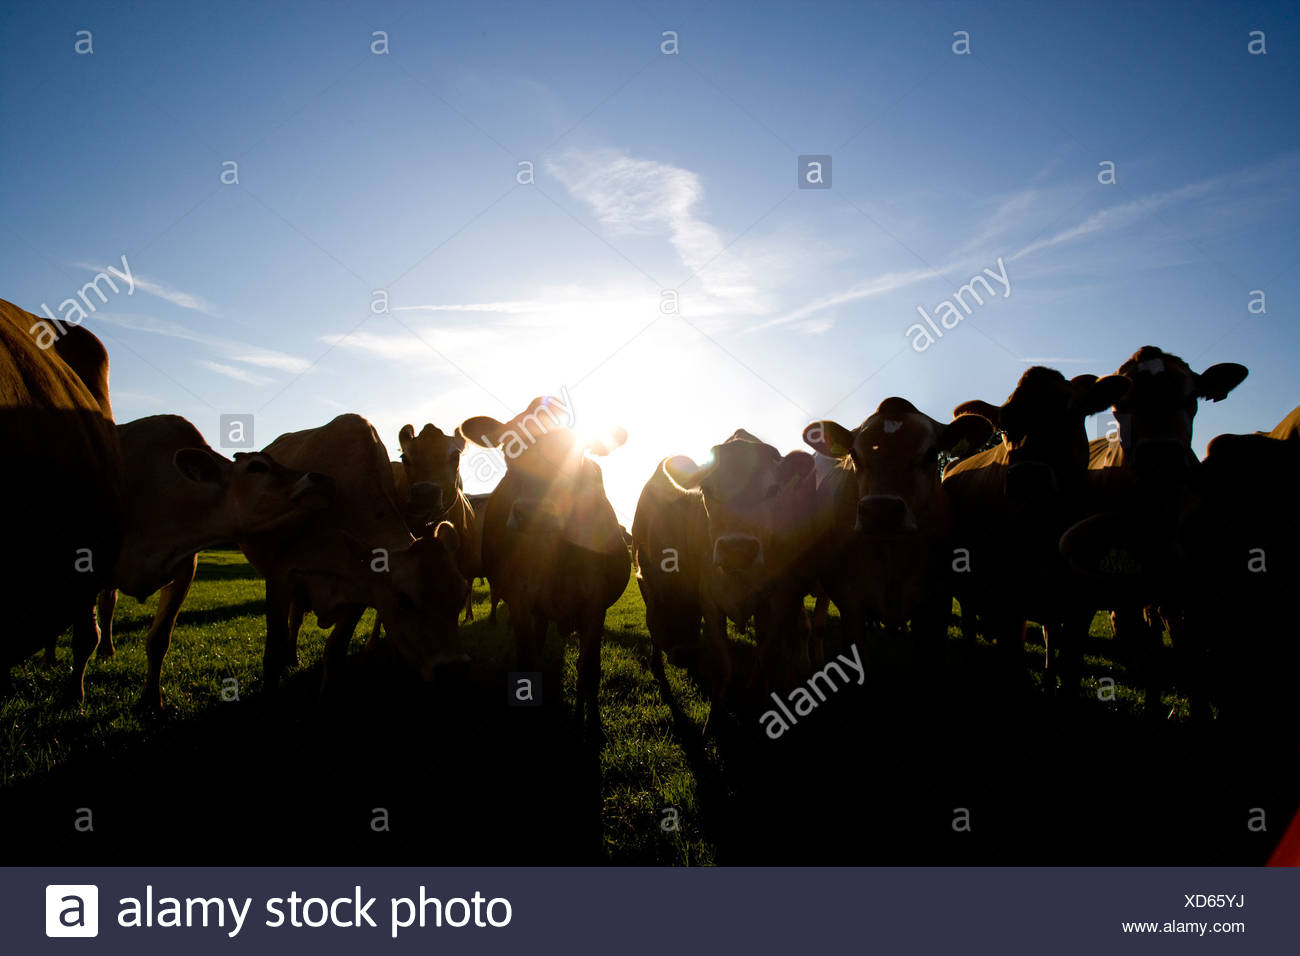 Sun shining behind silhouetted Jersey cows in field - Stock Image